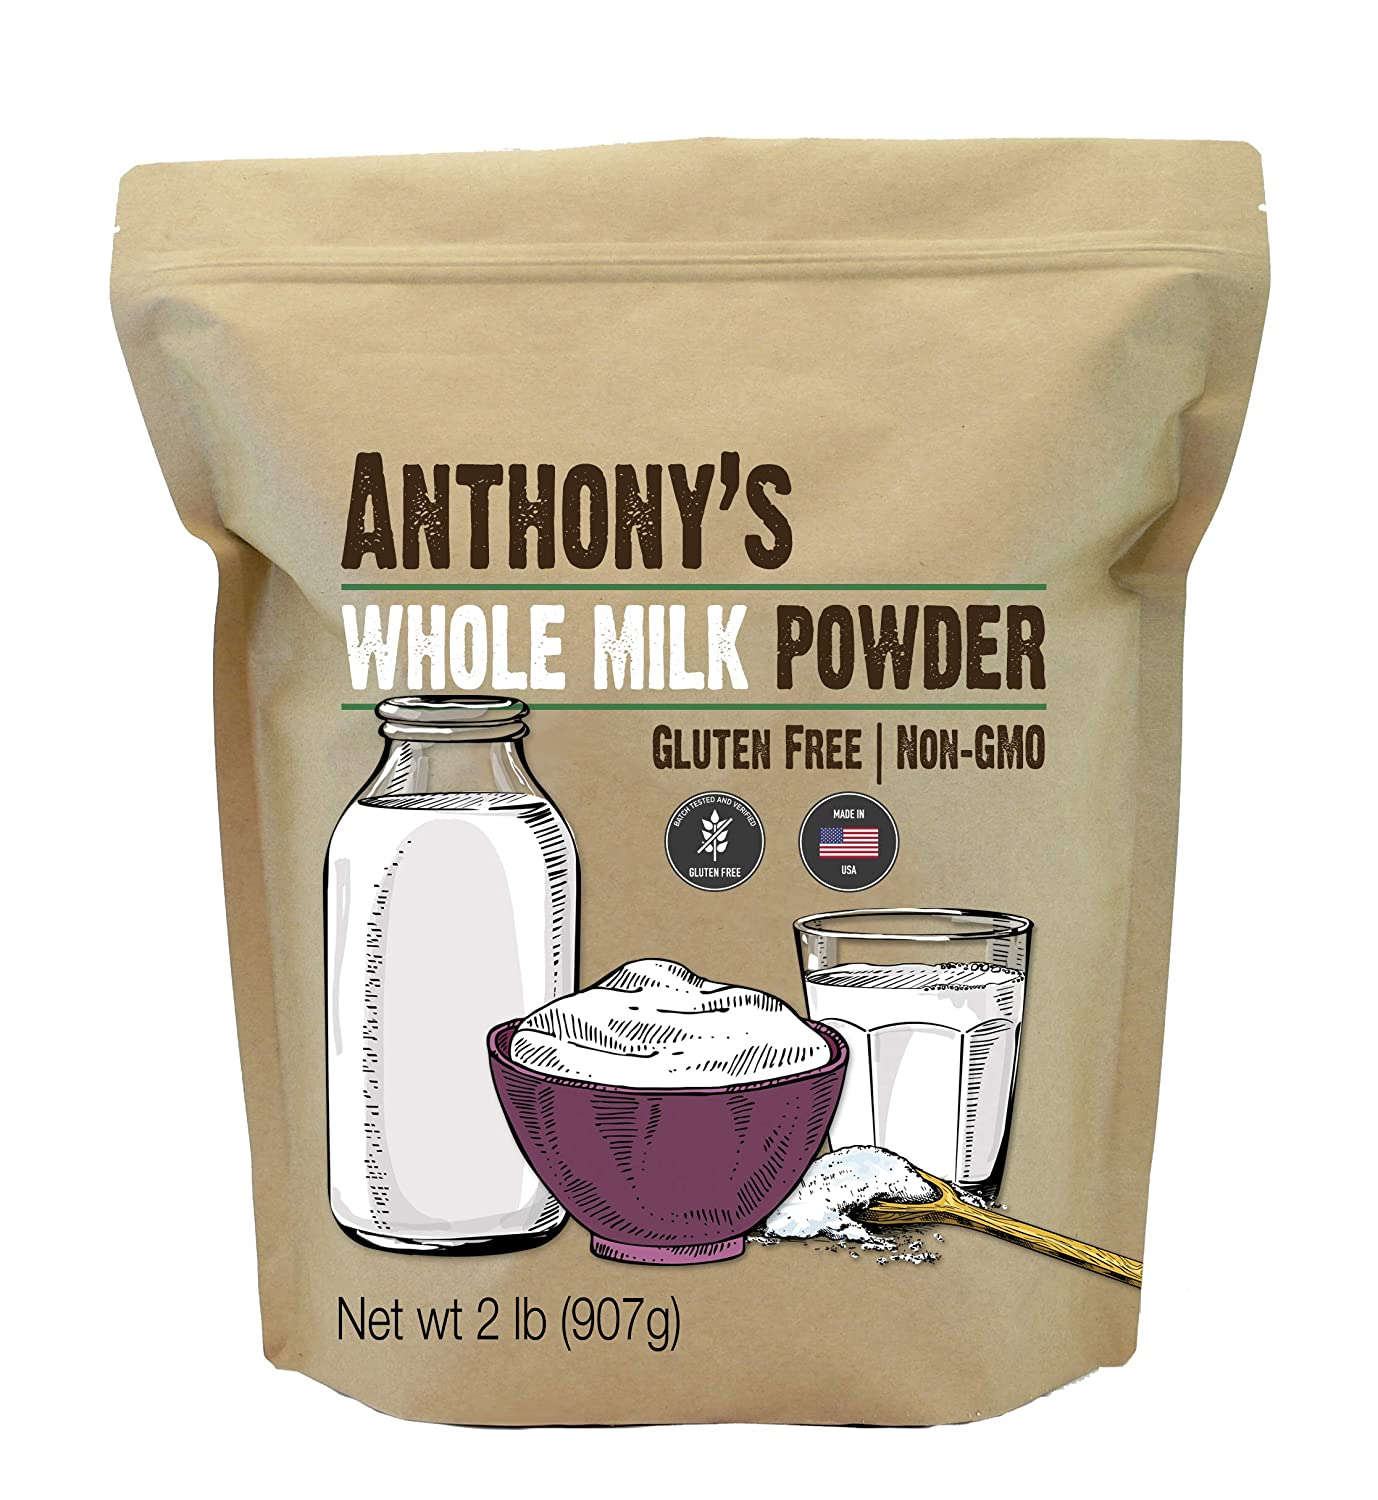 Whole Milk Powder: Gluten Free & Made in USA